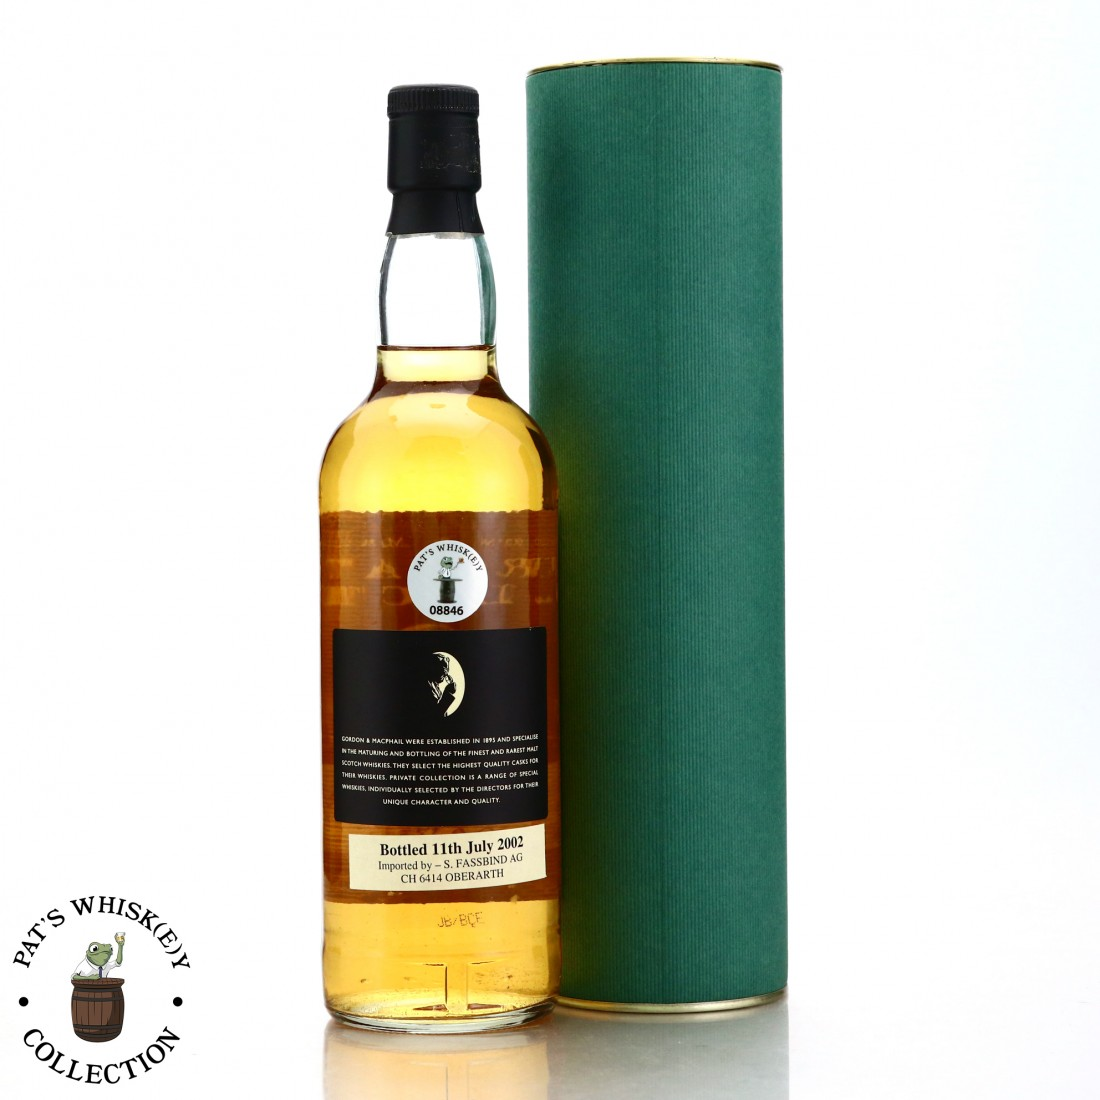 Caol Ila 1965 Gordon and MacPhail 36 Year Old Private Collection